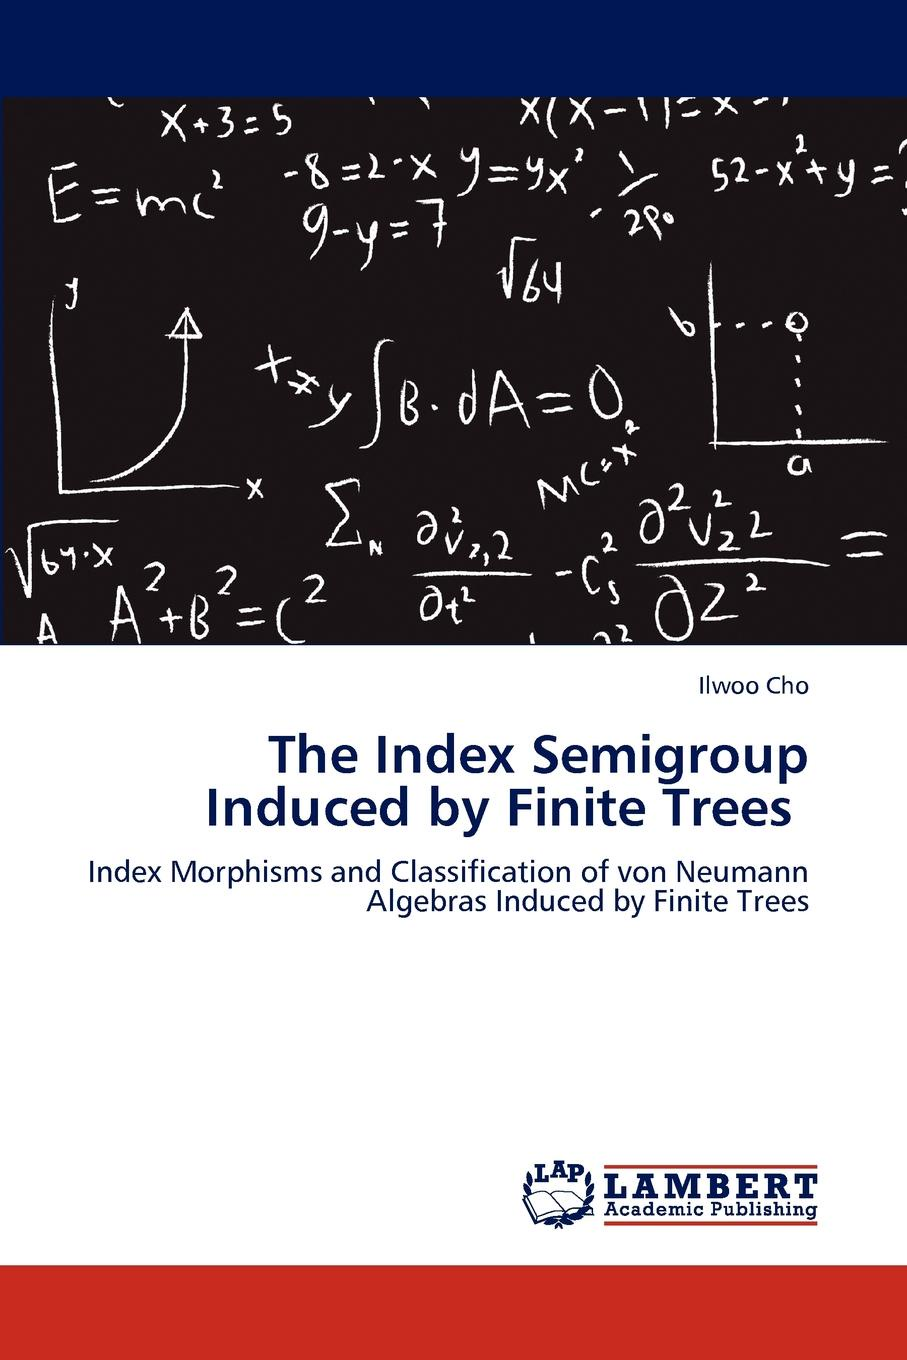 Ilwoo Cho The Index Semigroup Induced by Finite Trees xavier lorca tree based graph partitioning constraint